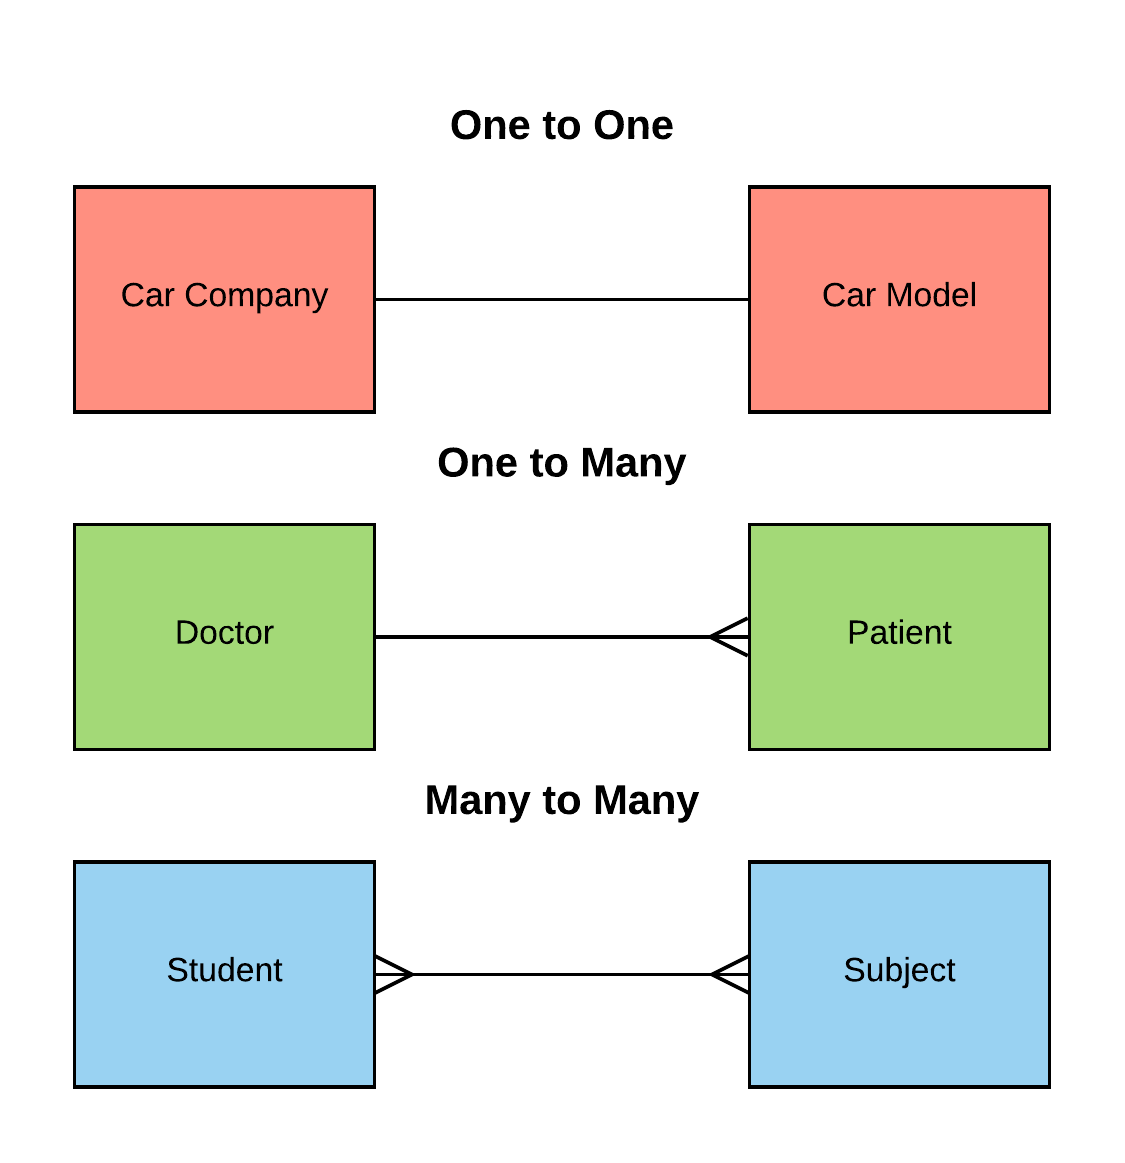 File:entity Relationship Diagram Examples - Wikimedia